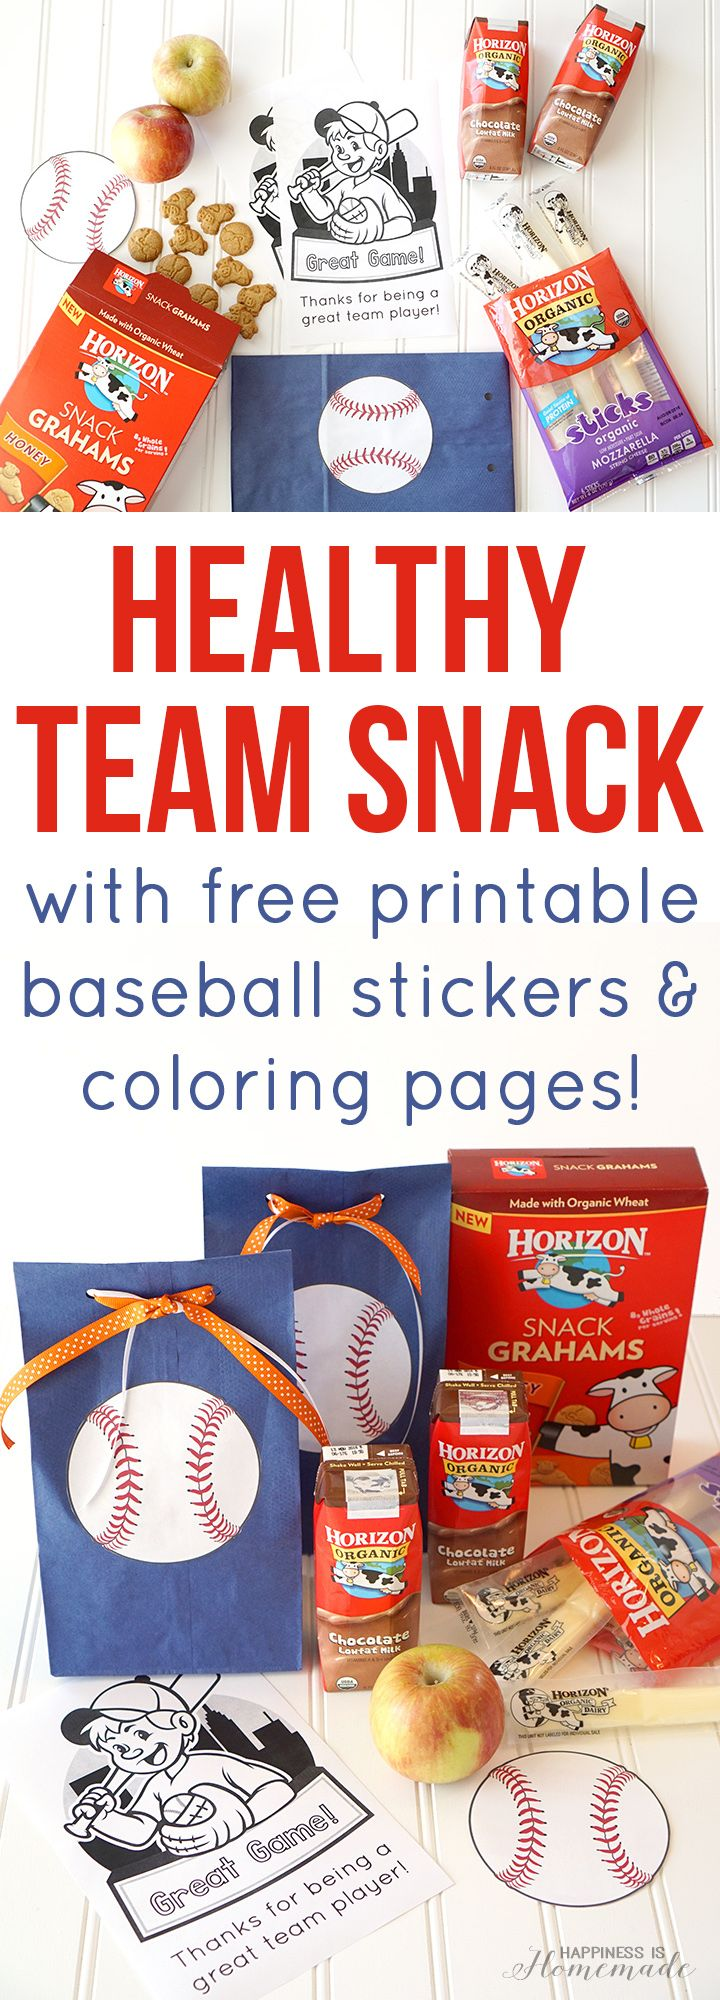 Hey baseball moms, check out this adorable quick & easy baseball team snack idea. Free printable coloring page and stickers! - Happiness is Homemade #HorizonOrganic #ad #CuriousKids